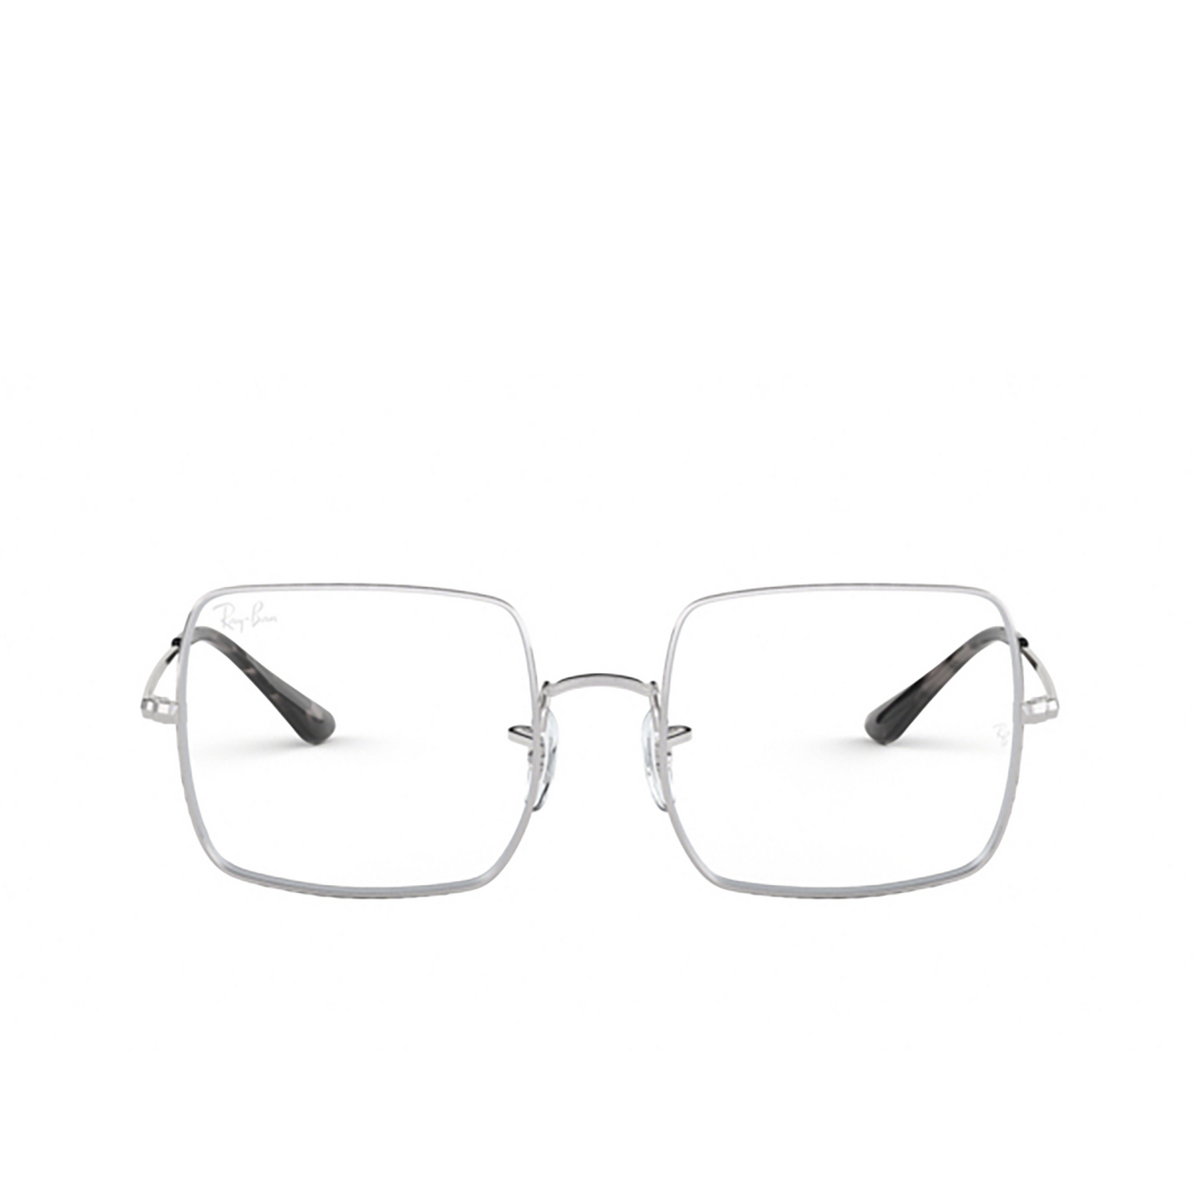 Ray-Ban® Eyeglasses: Square RX1971V color Silver 2501 - front view.